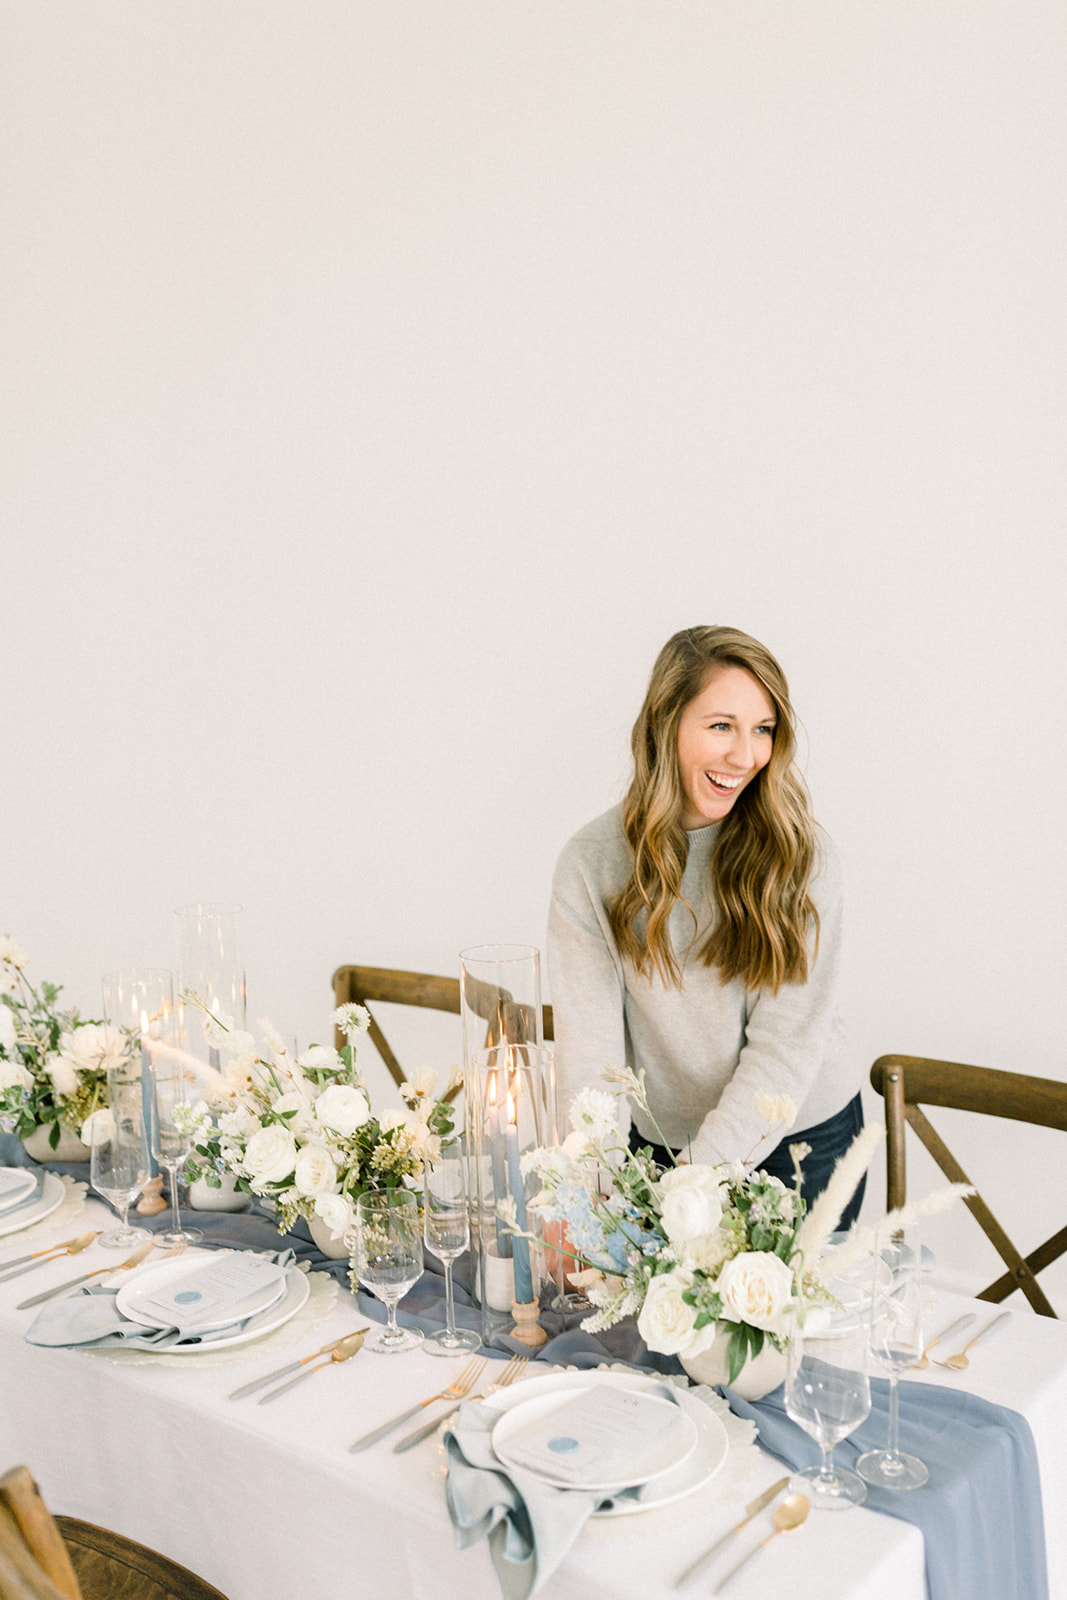 Michigan wedding planner setting a table for a wedding